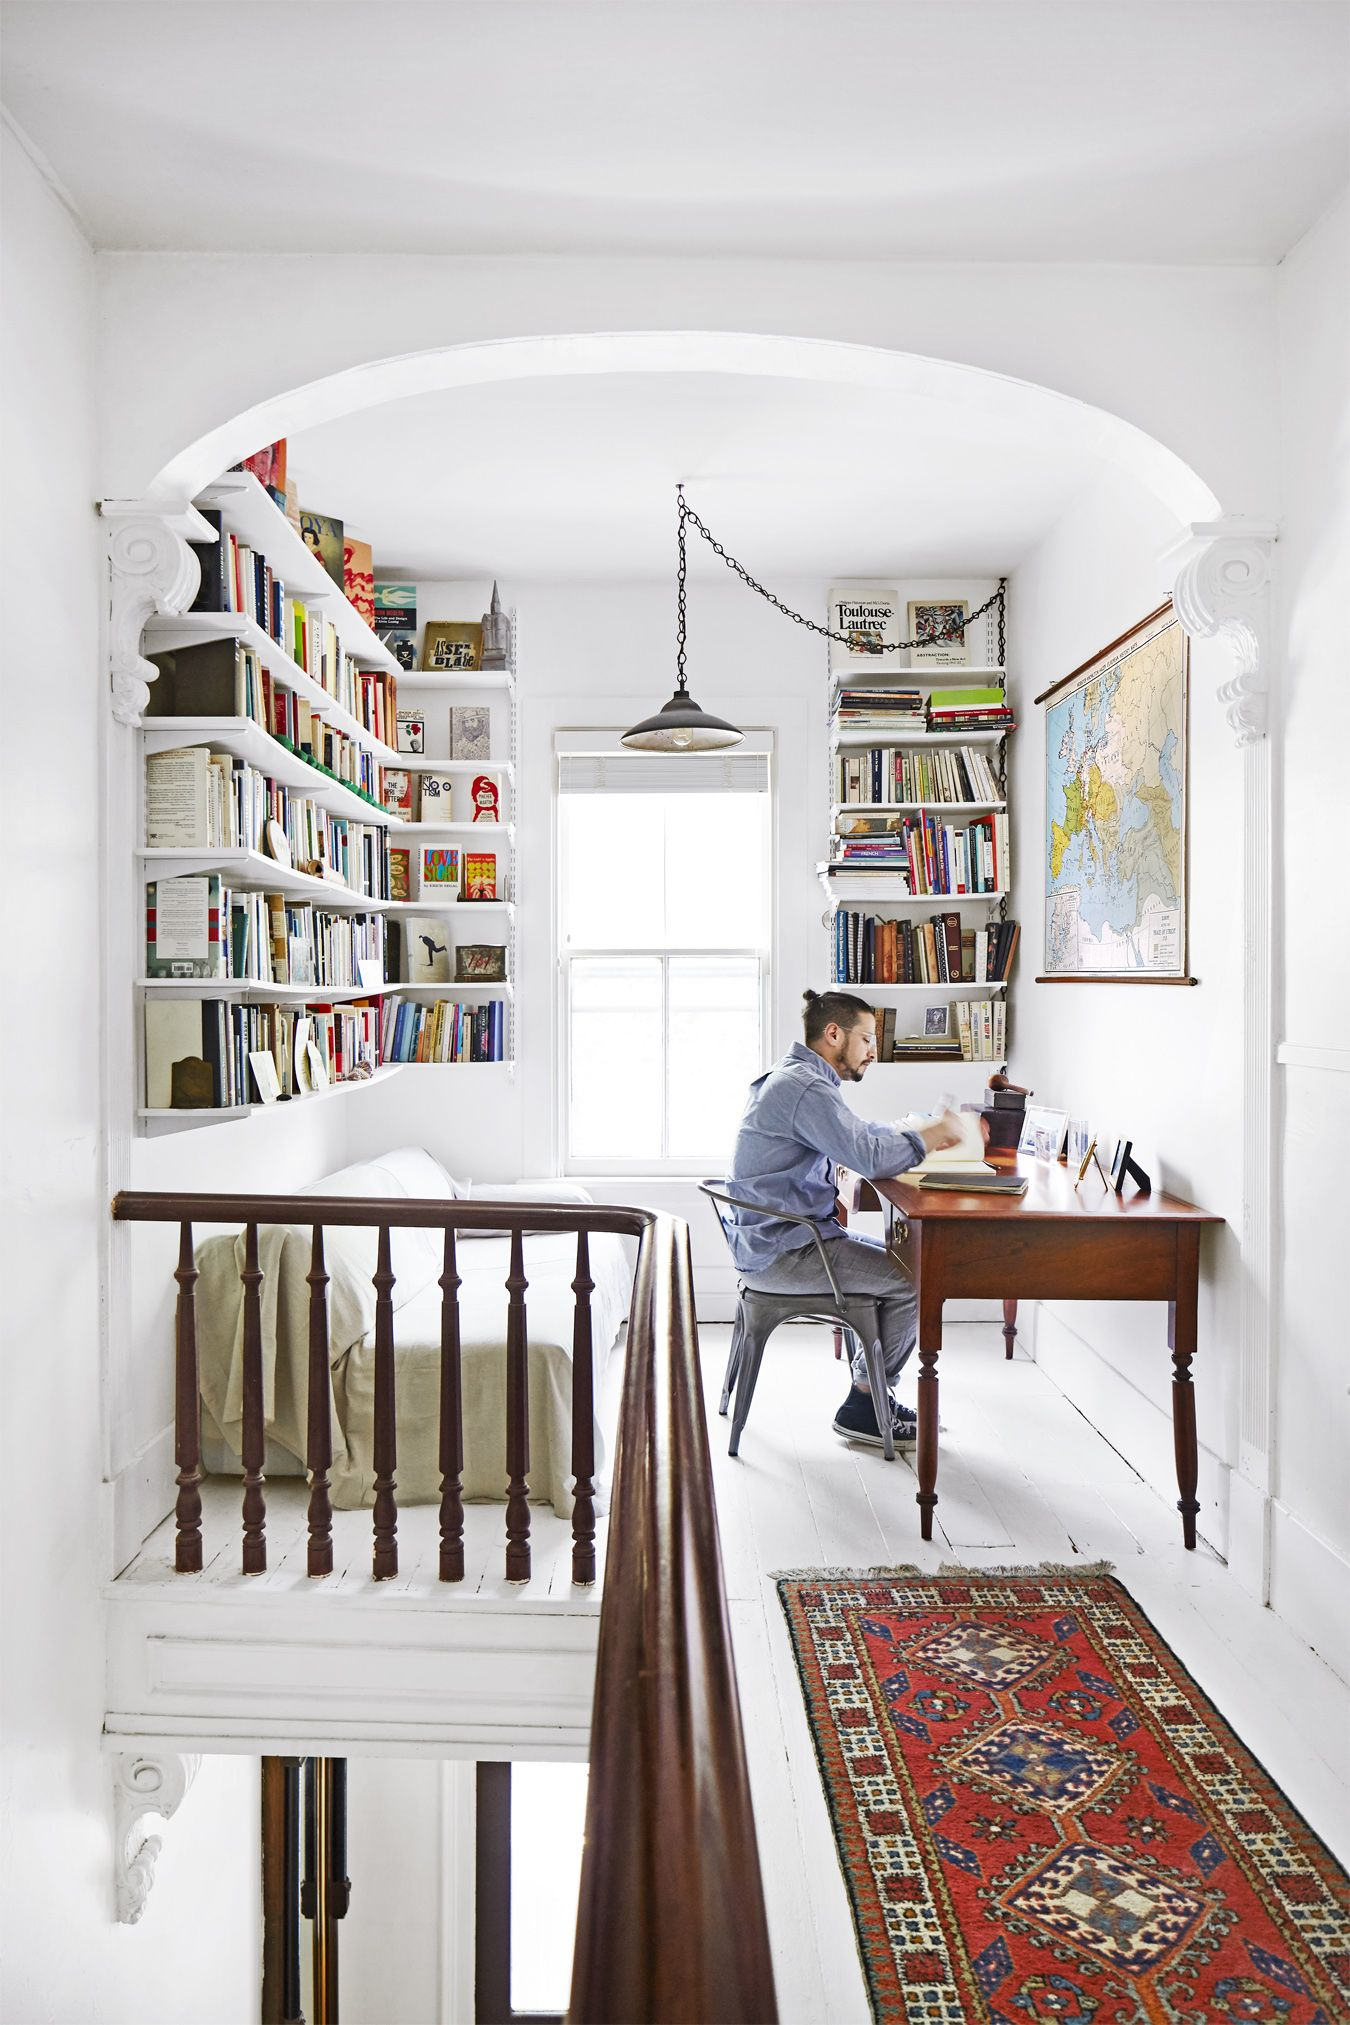 Home office space in an upstairs landing love the shelves and natural lighting also inspiring interior decorating ideas design rh pinterest